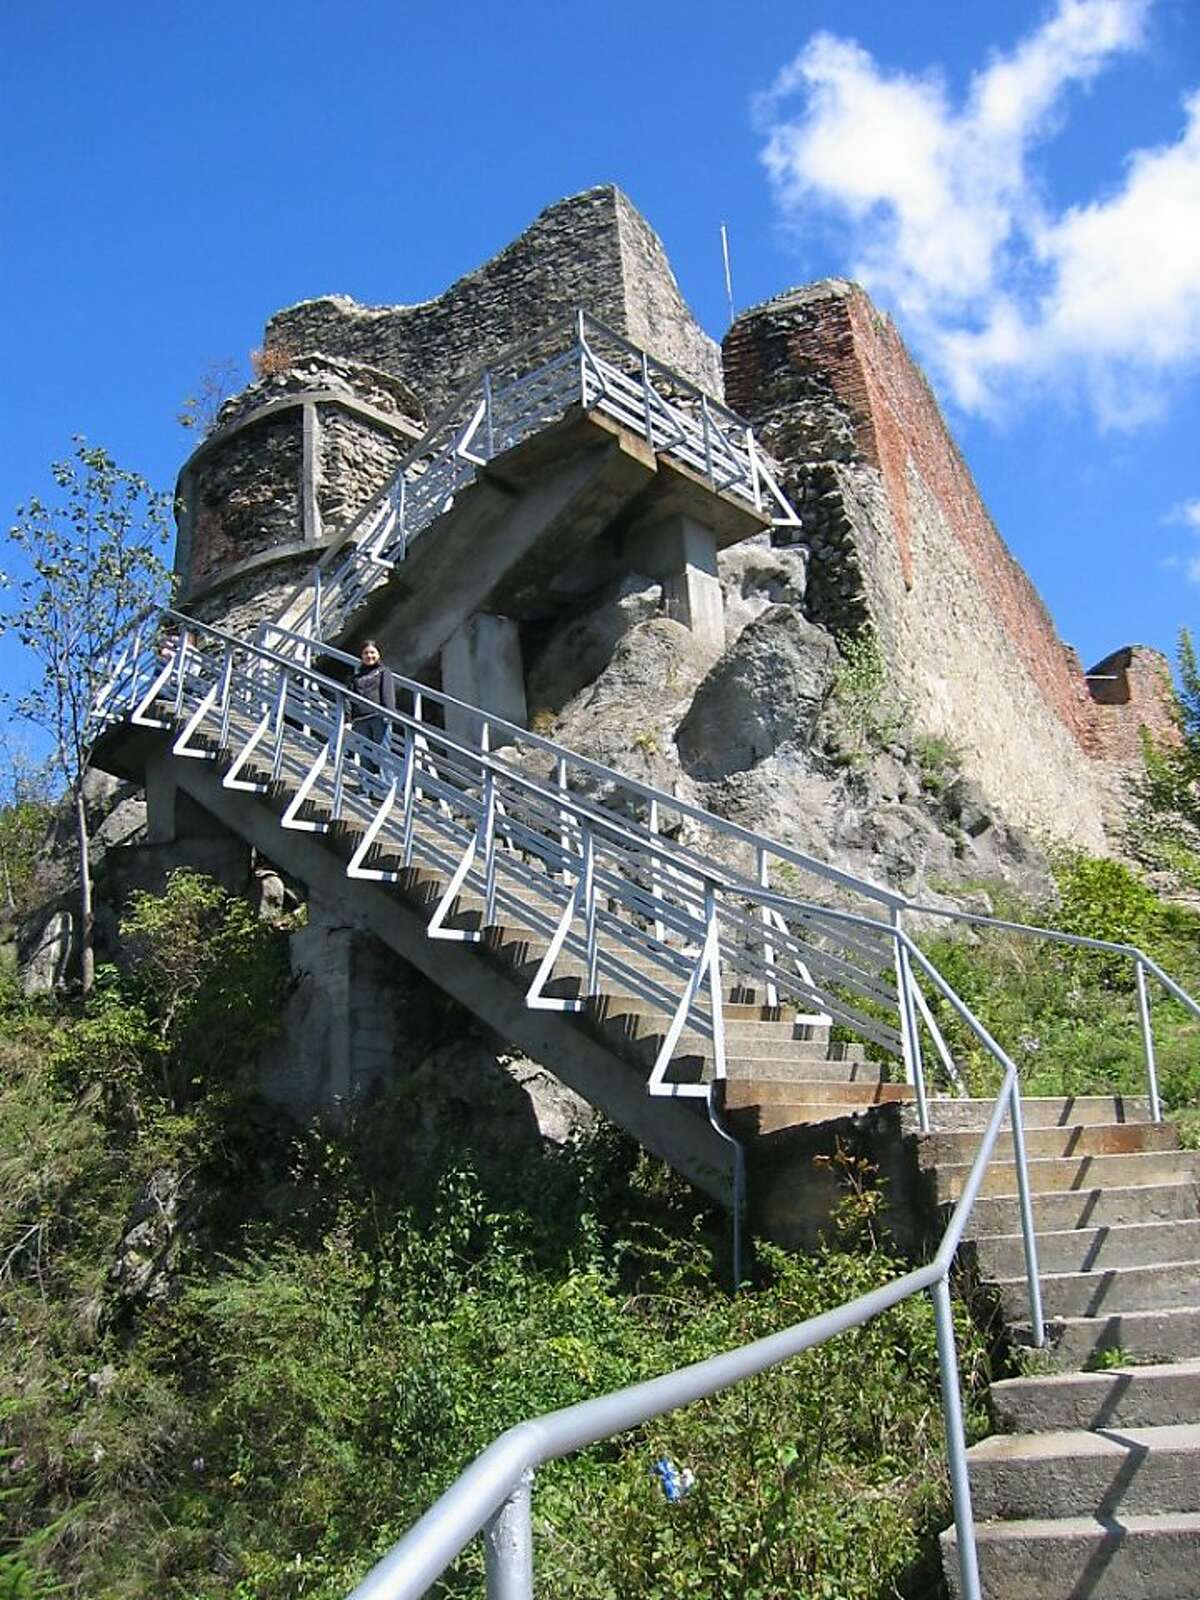 Visiting the ruins of Poienari Citadel require climbing a monstrous number of stairs.